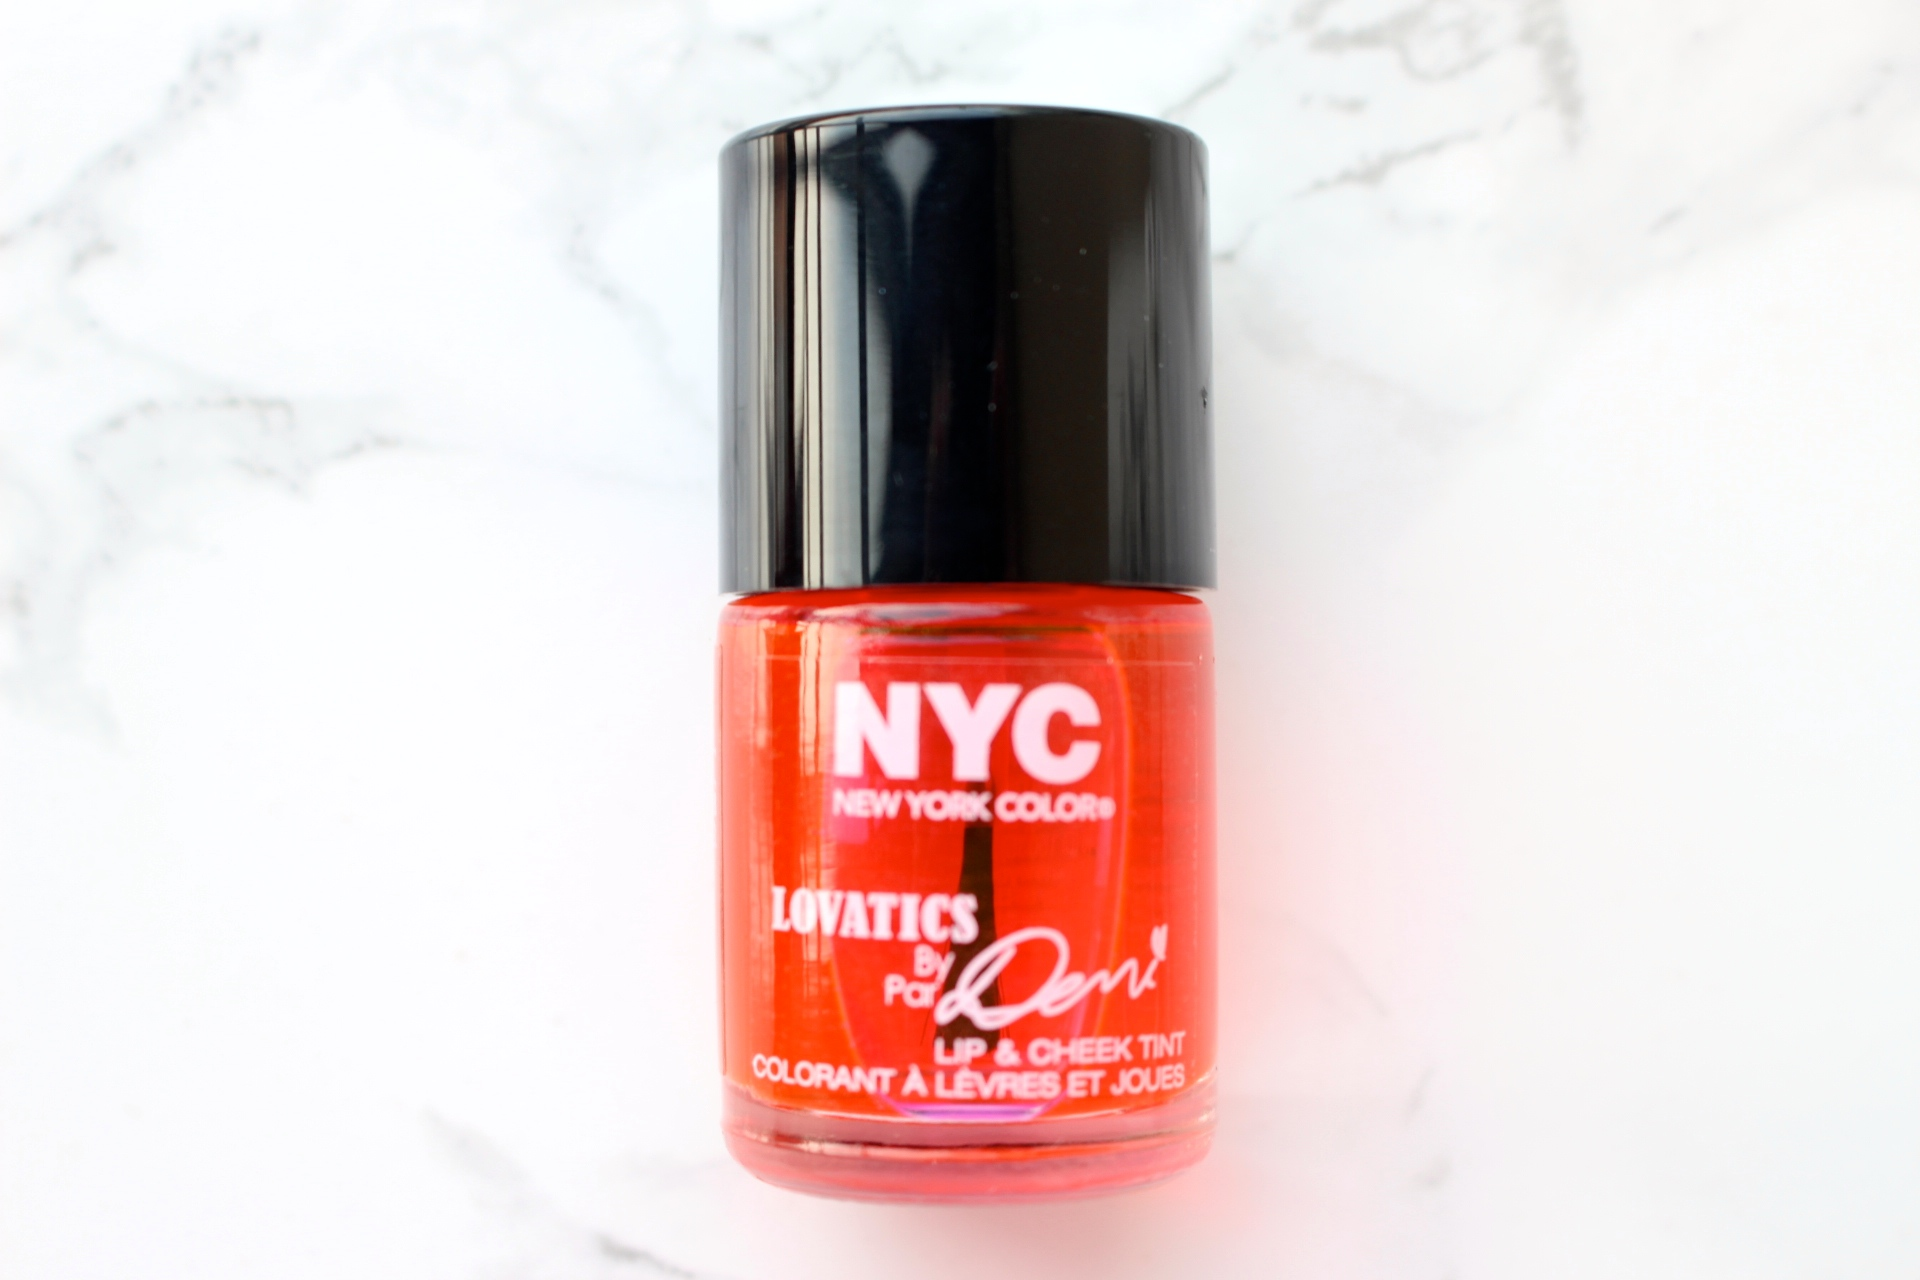 NYC Lovatics by Demi lip and check stain